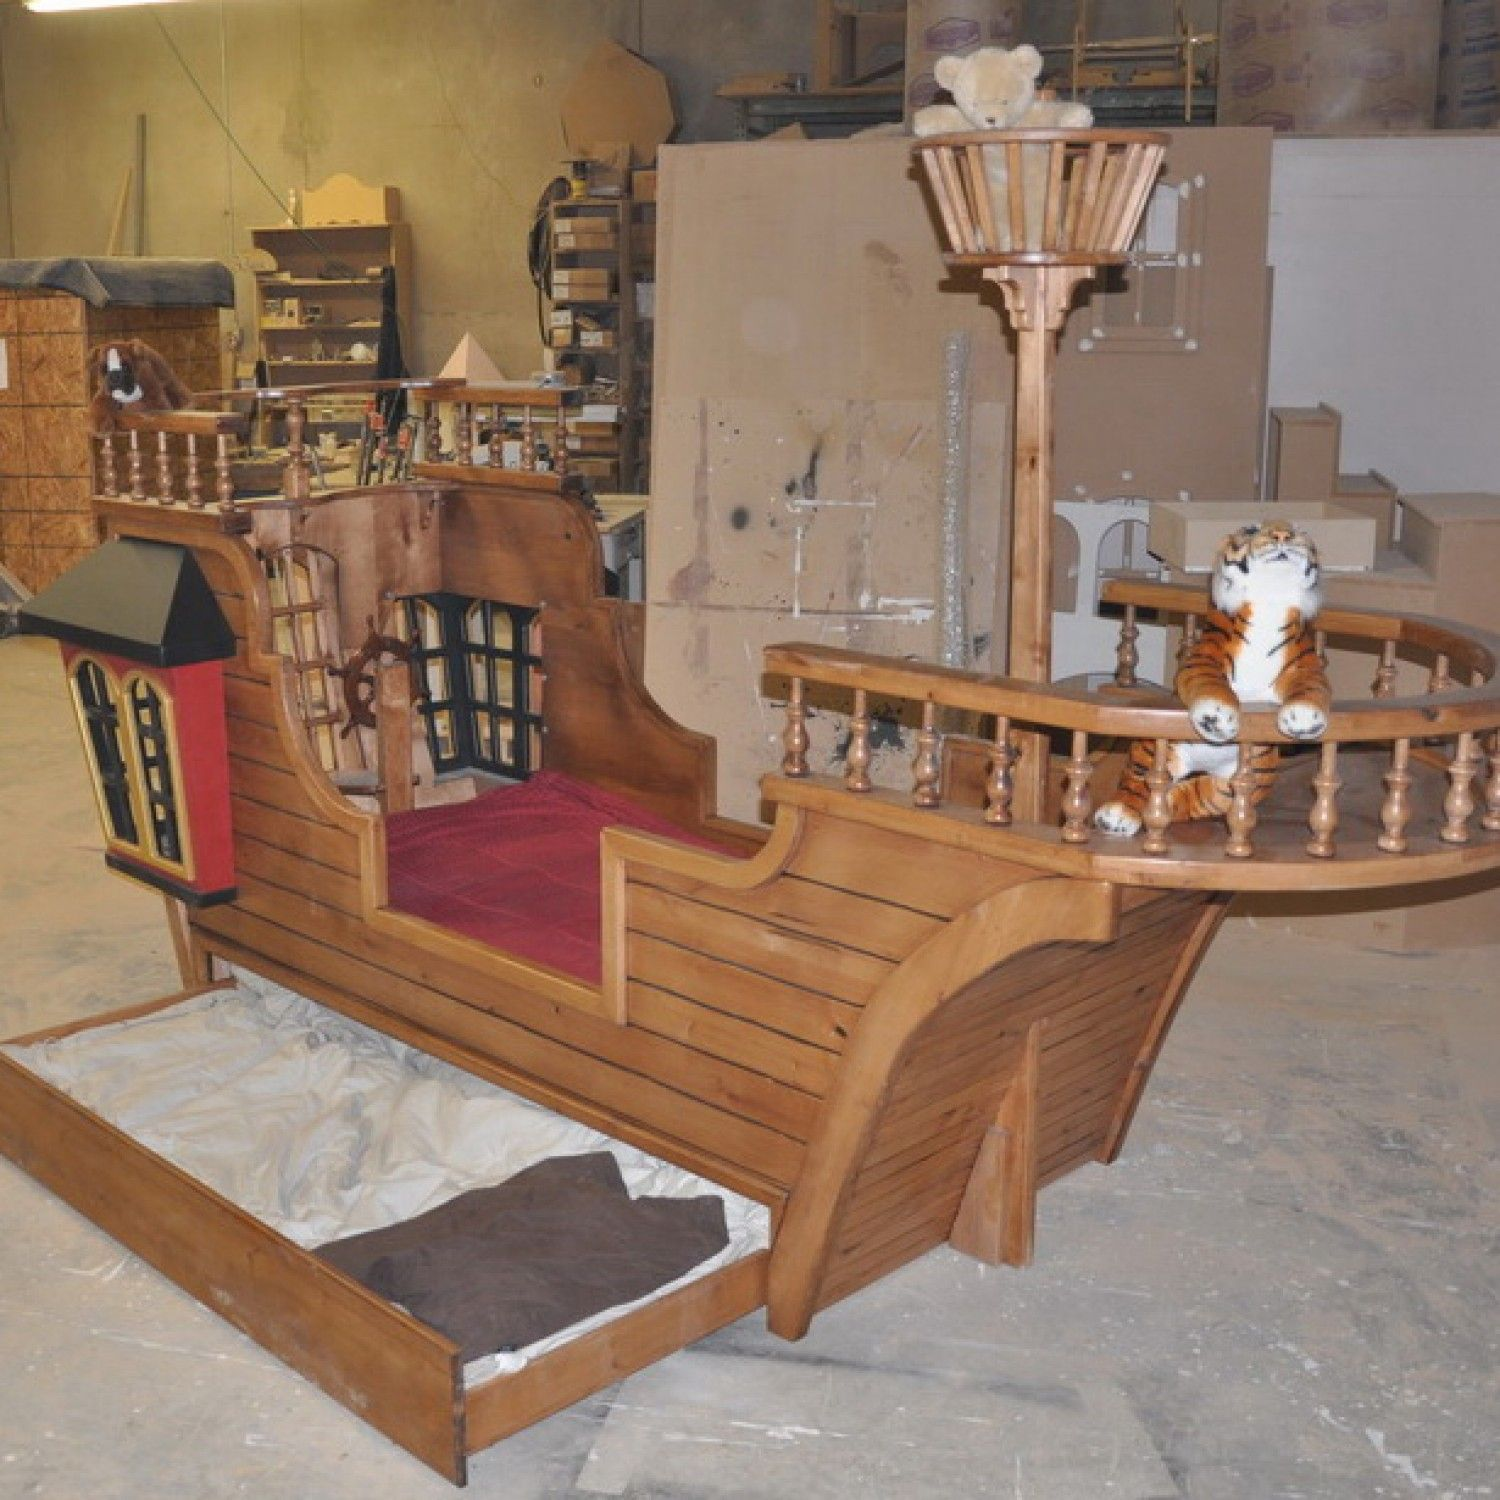 Pirate Bedroom Furniture Unique Bedroom Design By Steve Kuhl Featuring A Pirate Ship